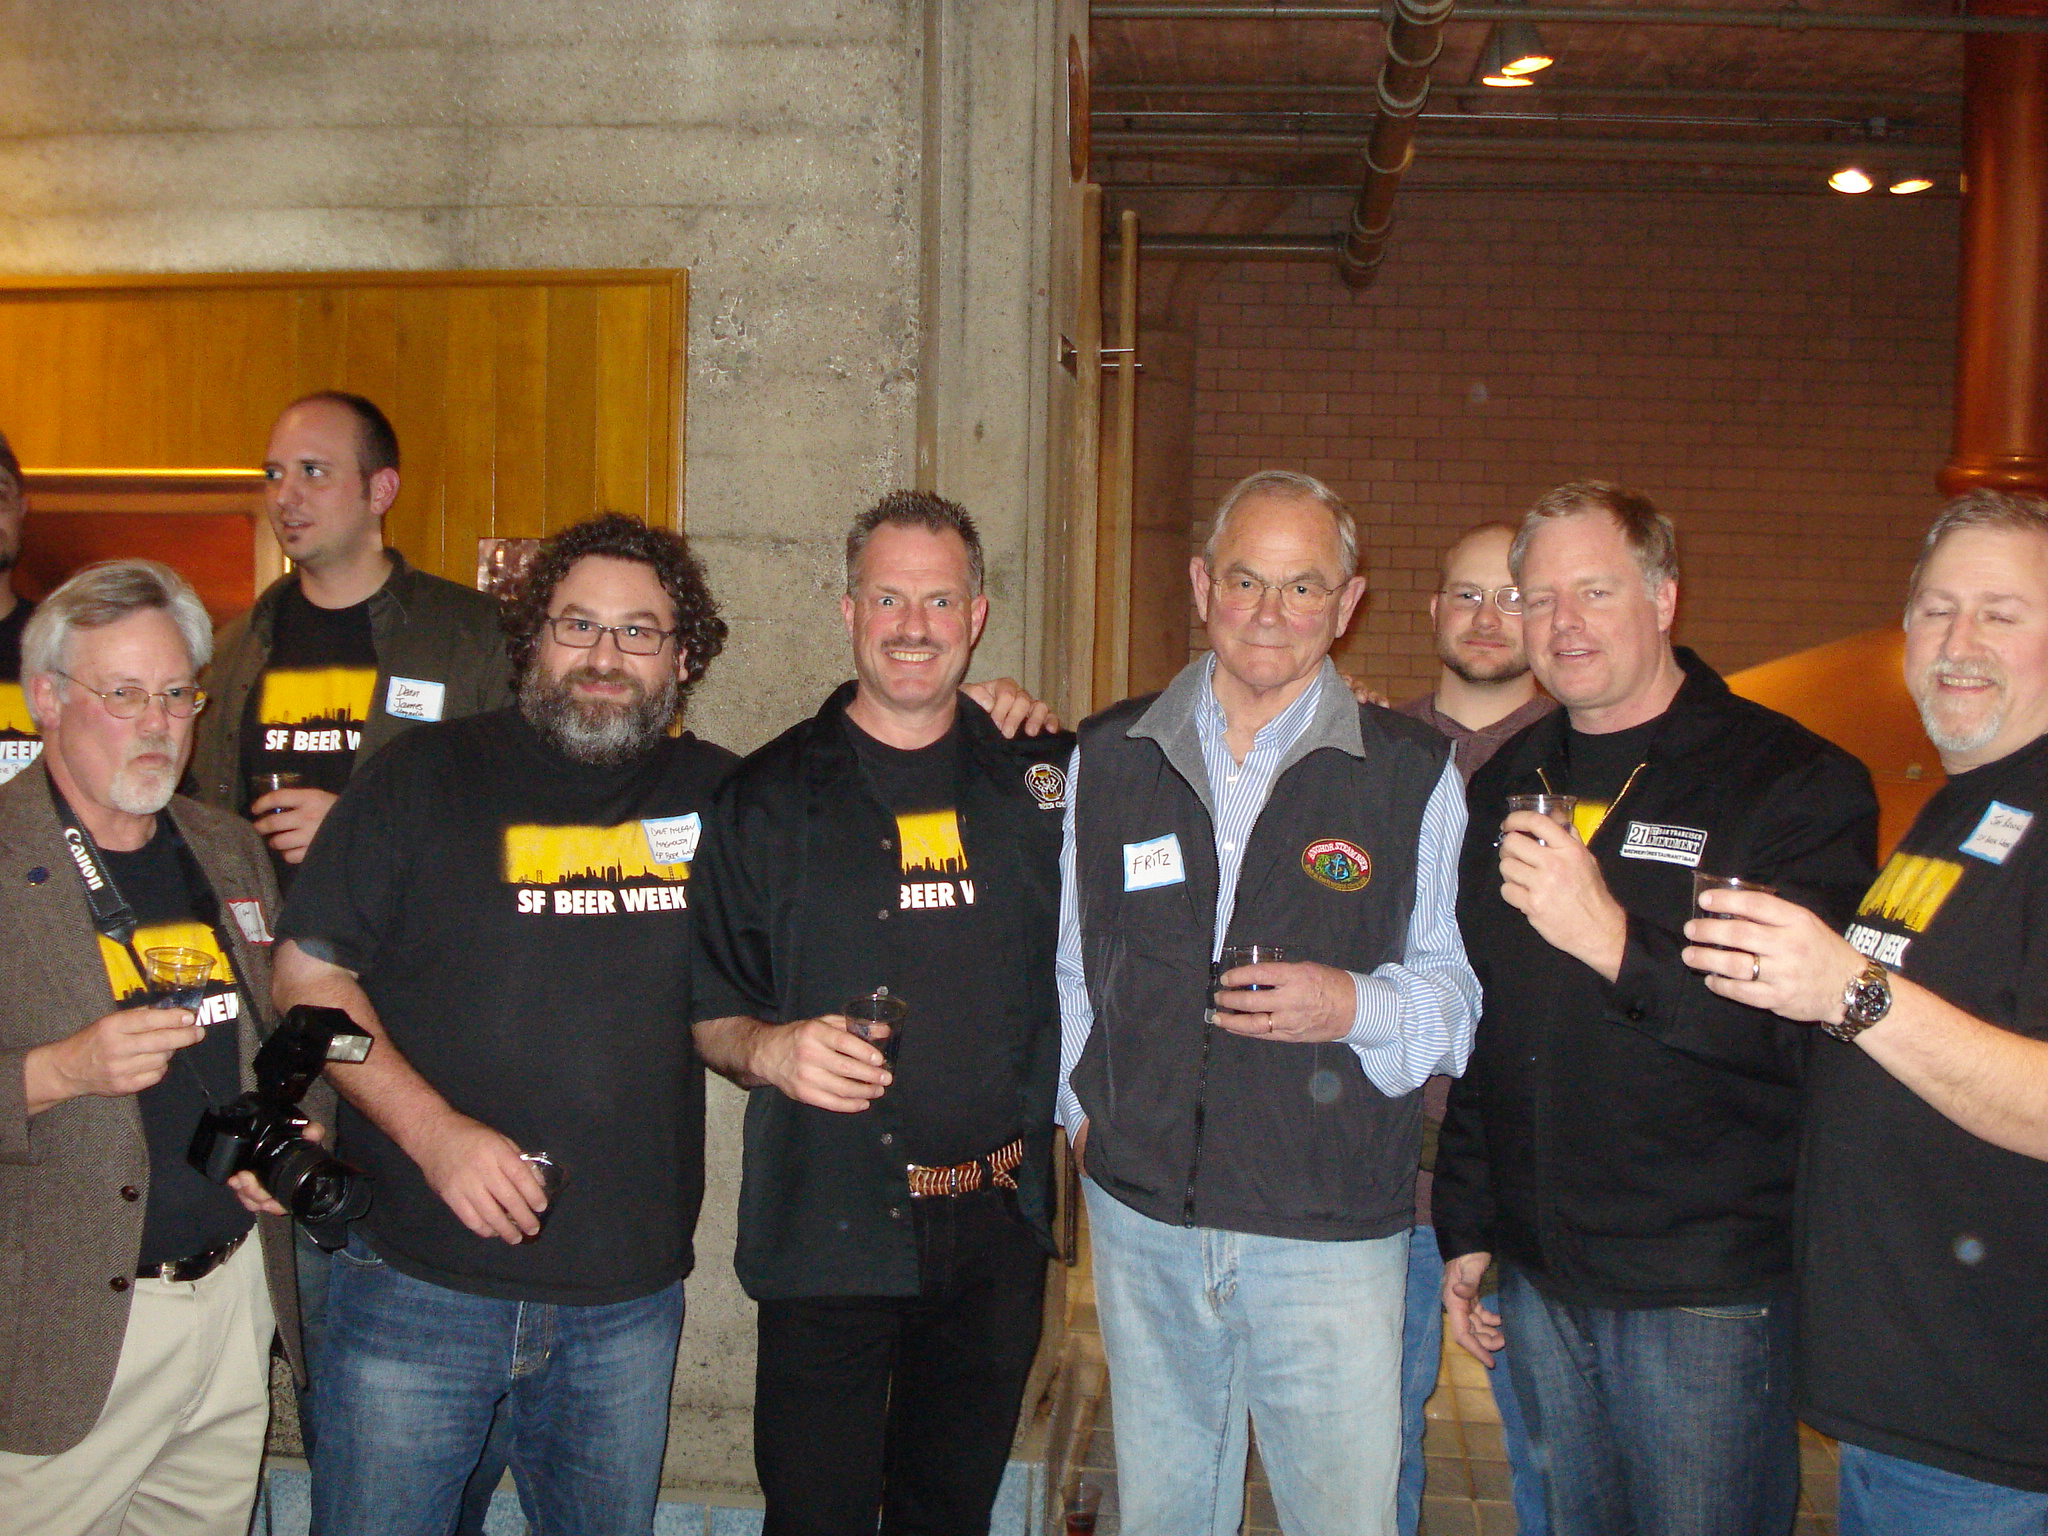 SF Beer Week Organizers